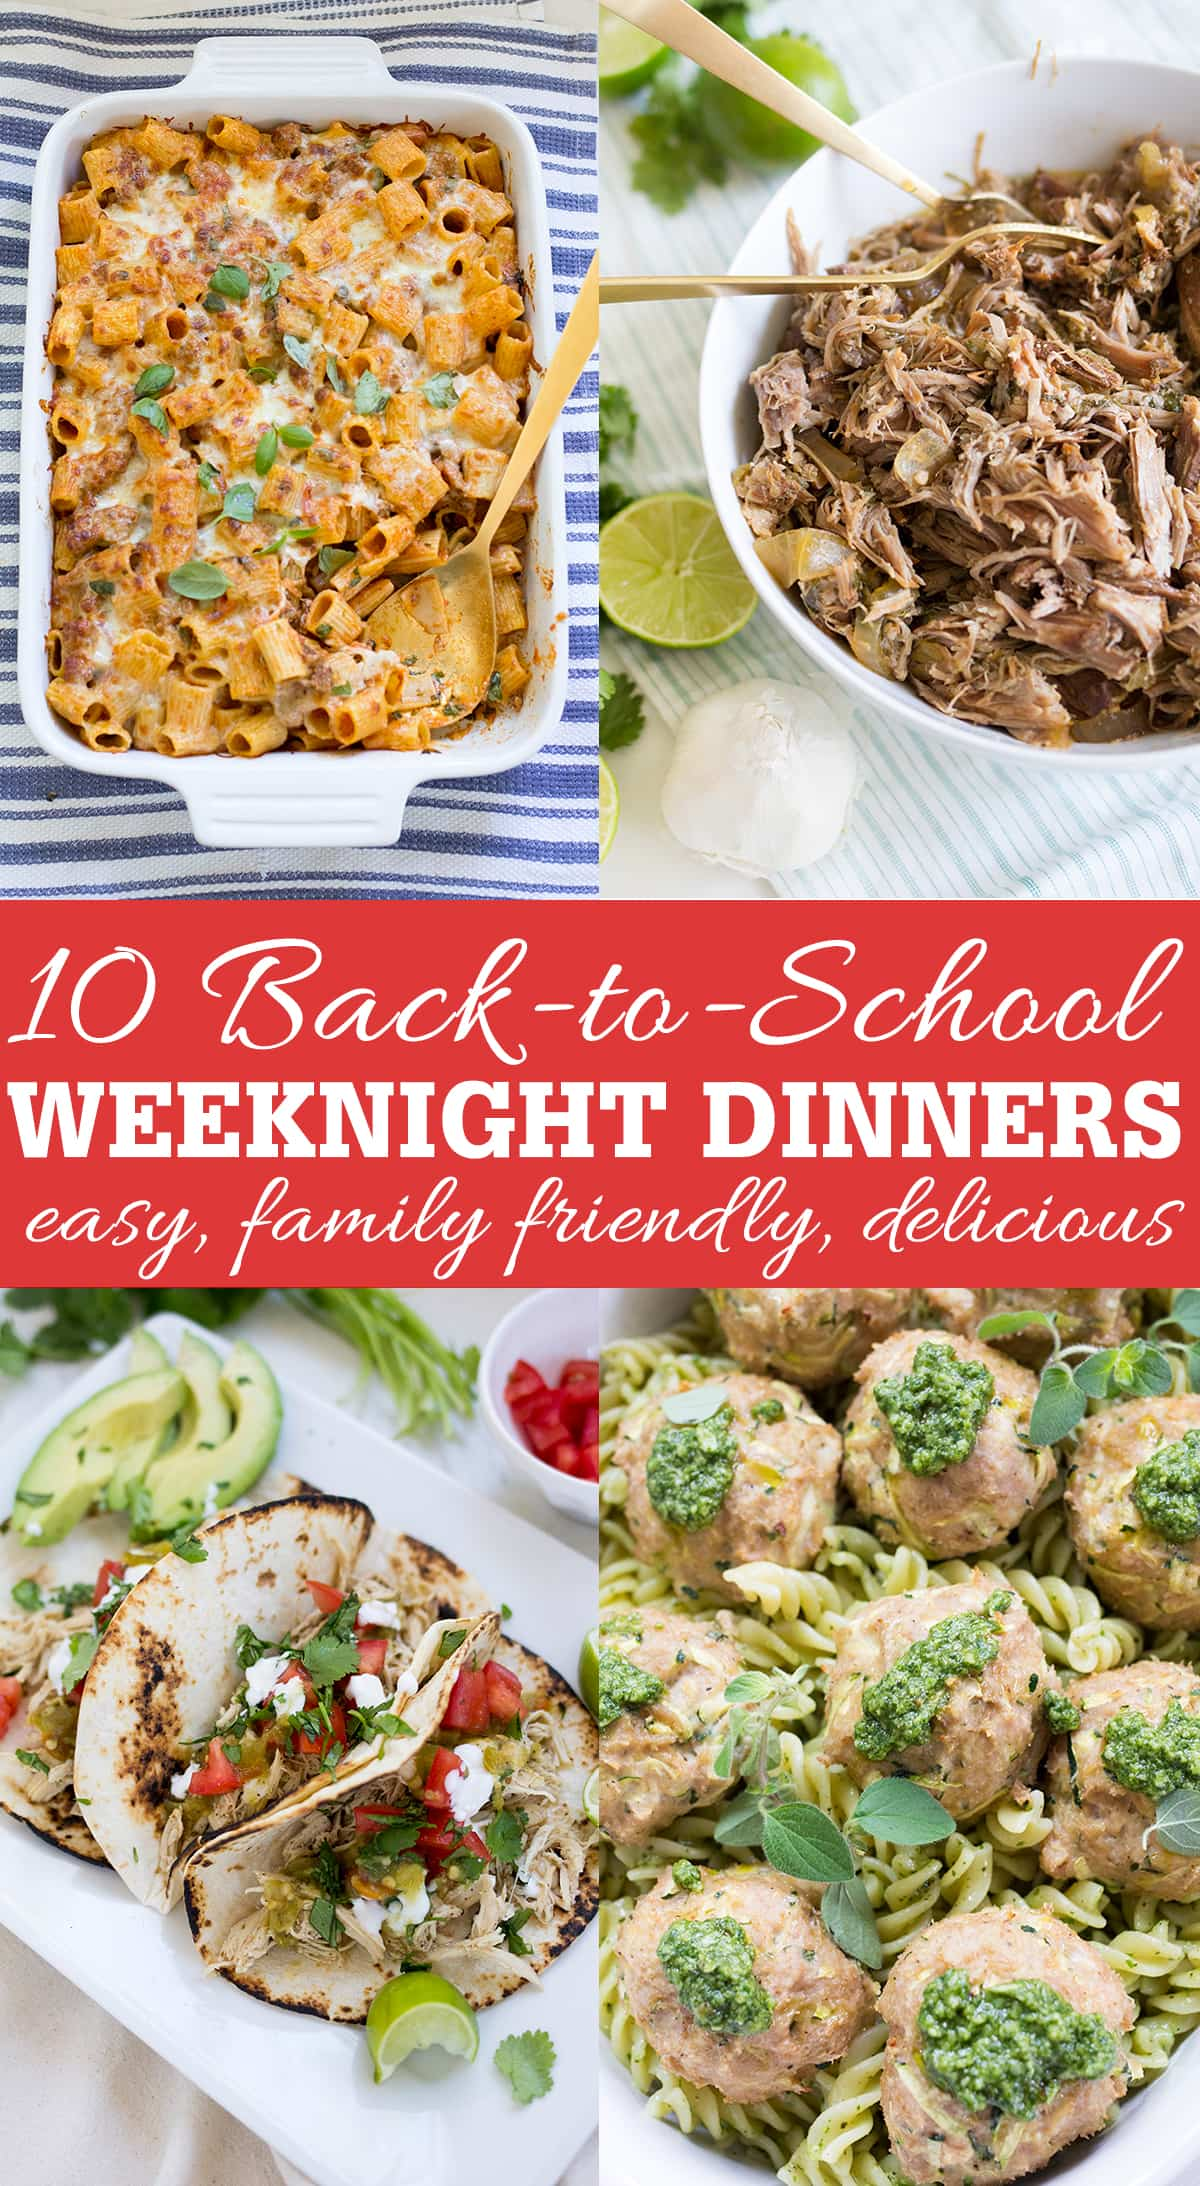 10 Back-to-School Weeknight Dinner Recipes that are family friendly